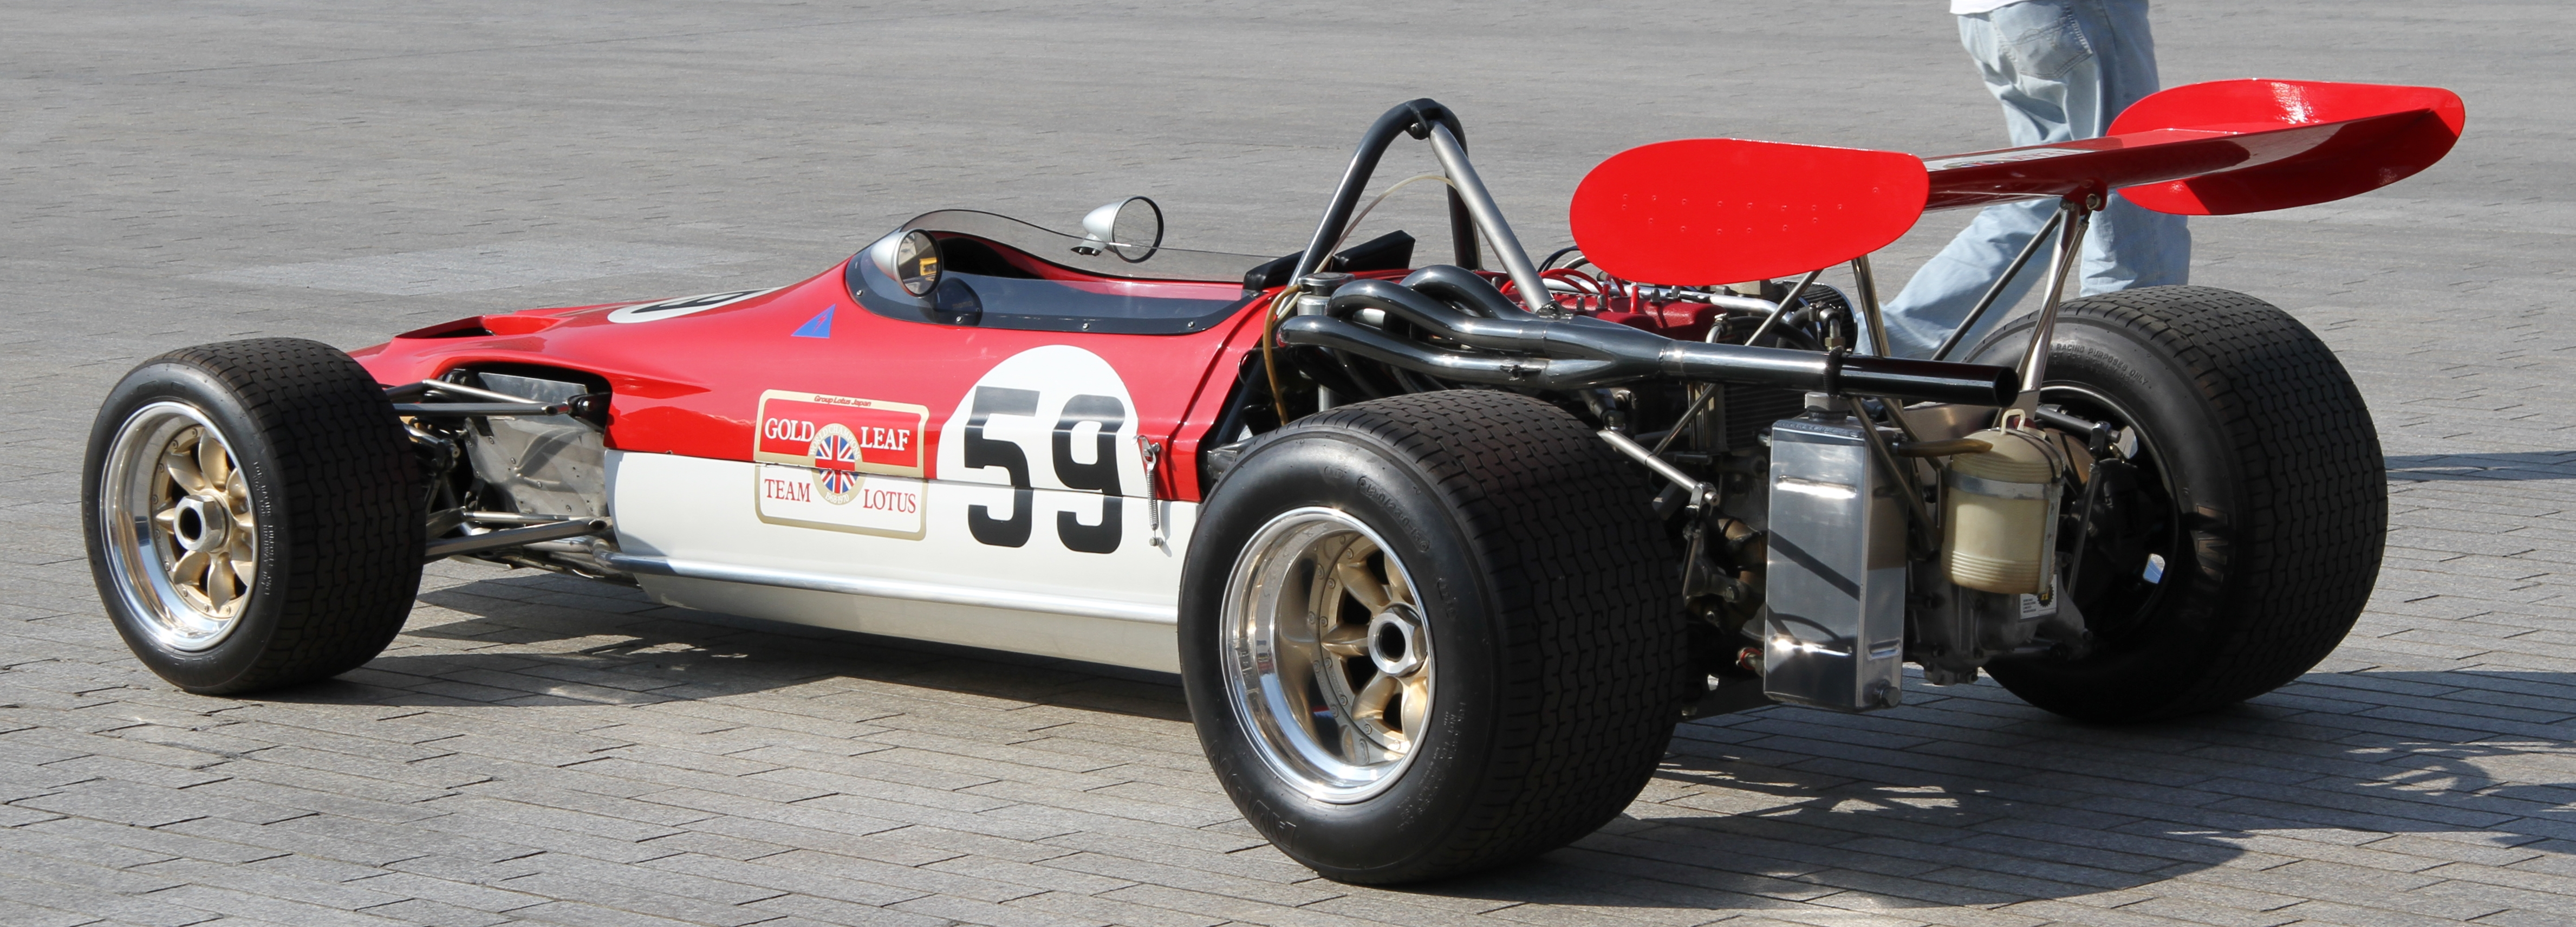 File:Lotus 59 rear.jpg - Wikipedia